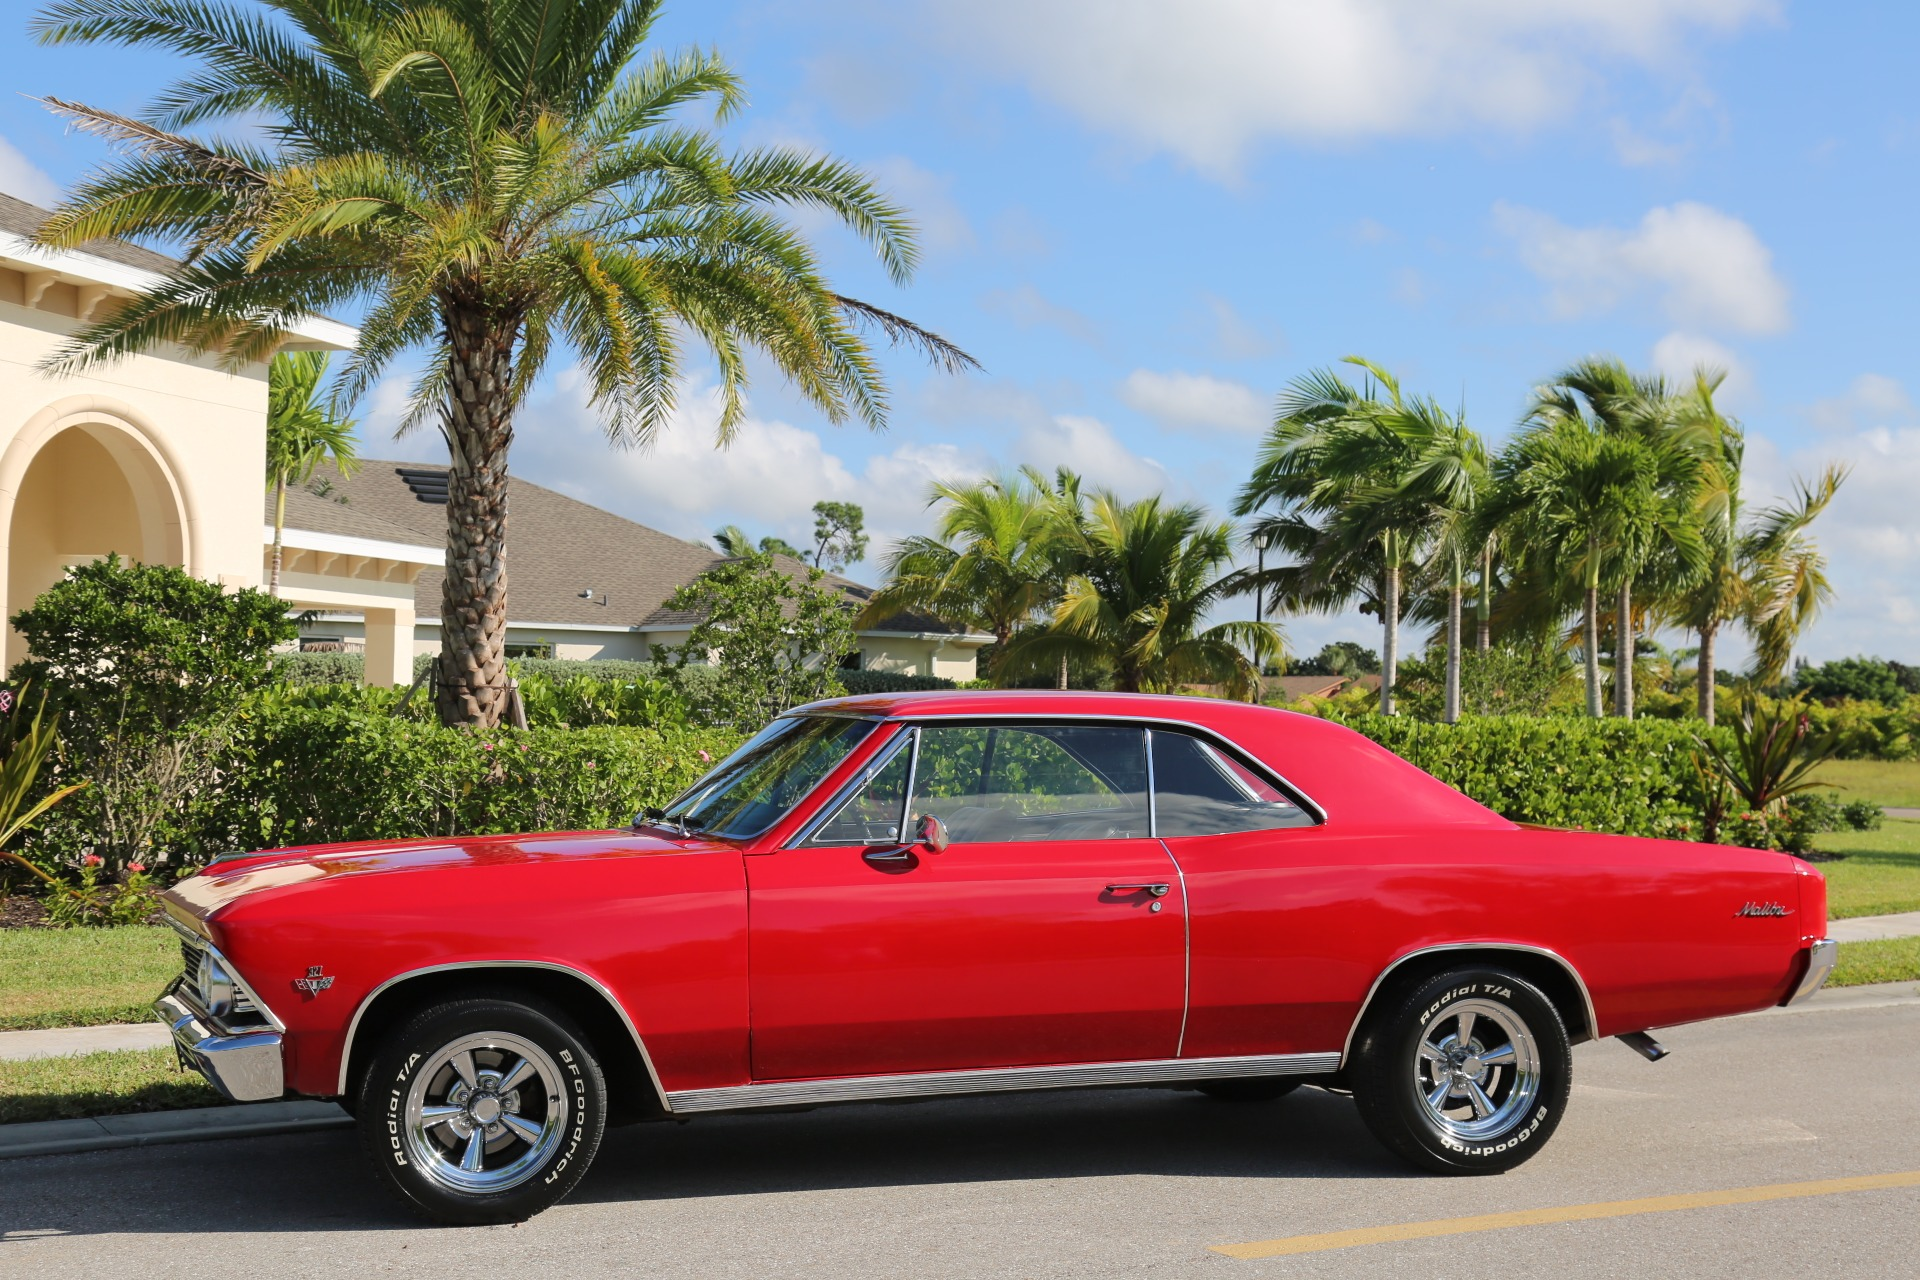 Used 1966 Chevrolet Chevelle Malibu 327 for sale Sold at Muscle Cars for Sale Inc. in Fort Myers FL 33912 4